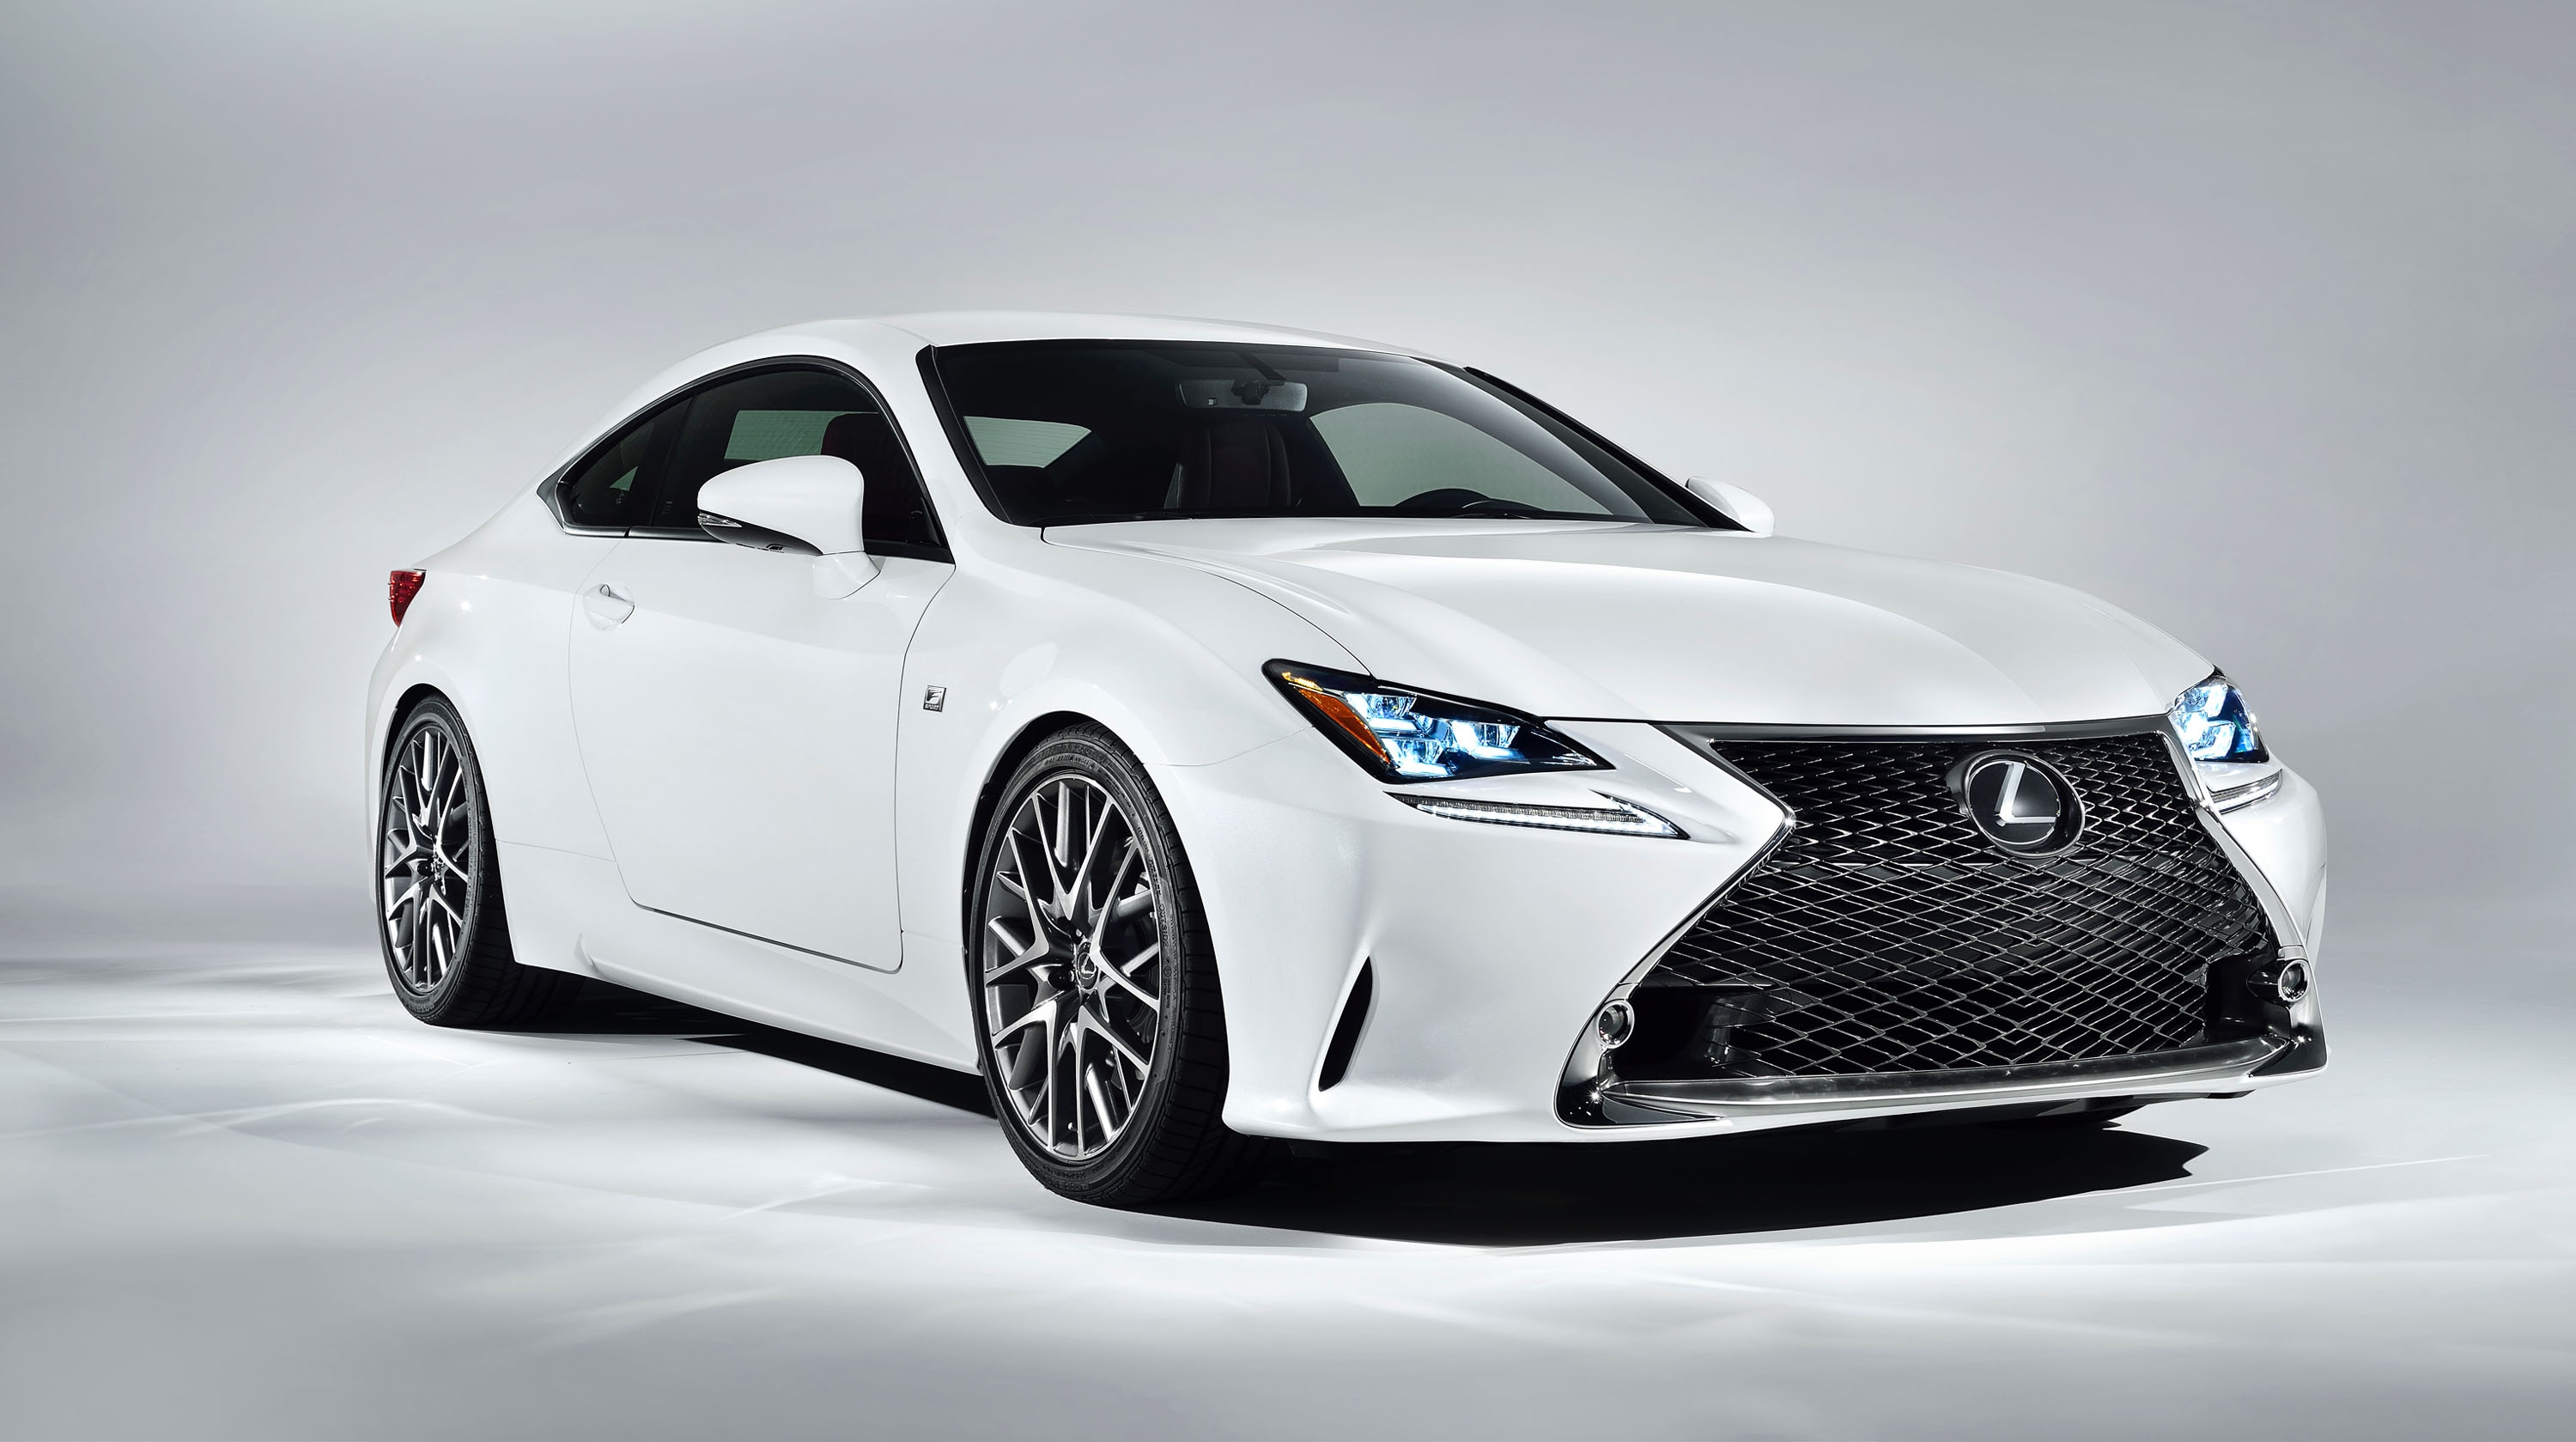 Lexus' Future Models Will Be Sportier And More Emotional